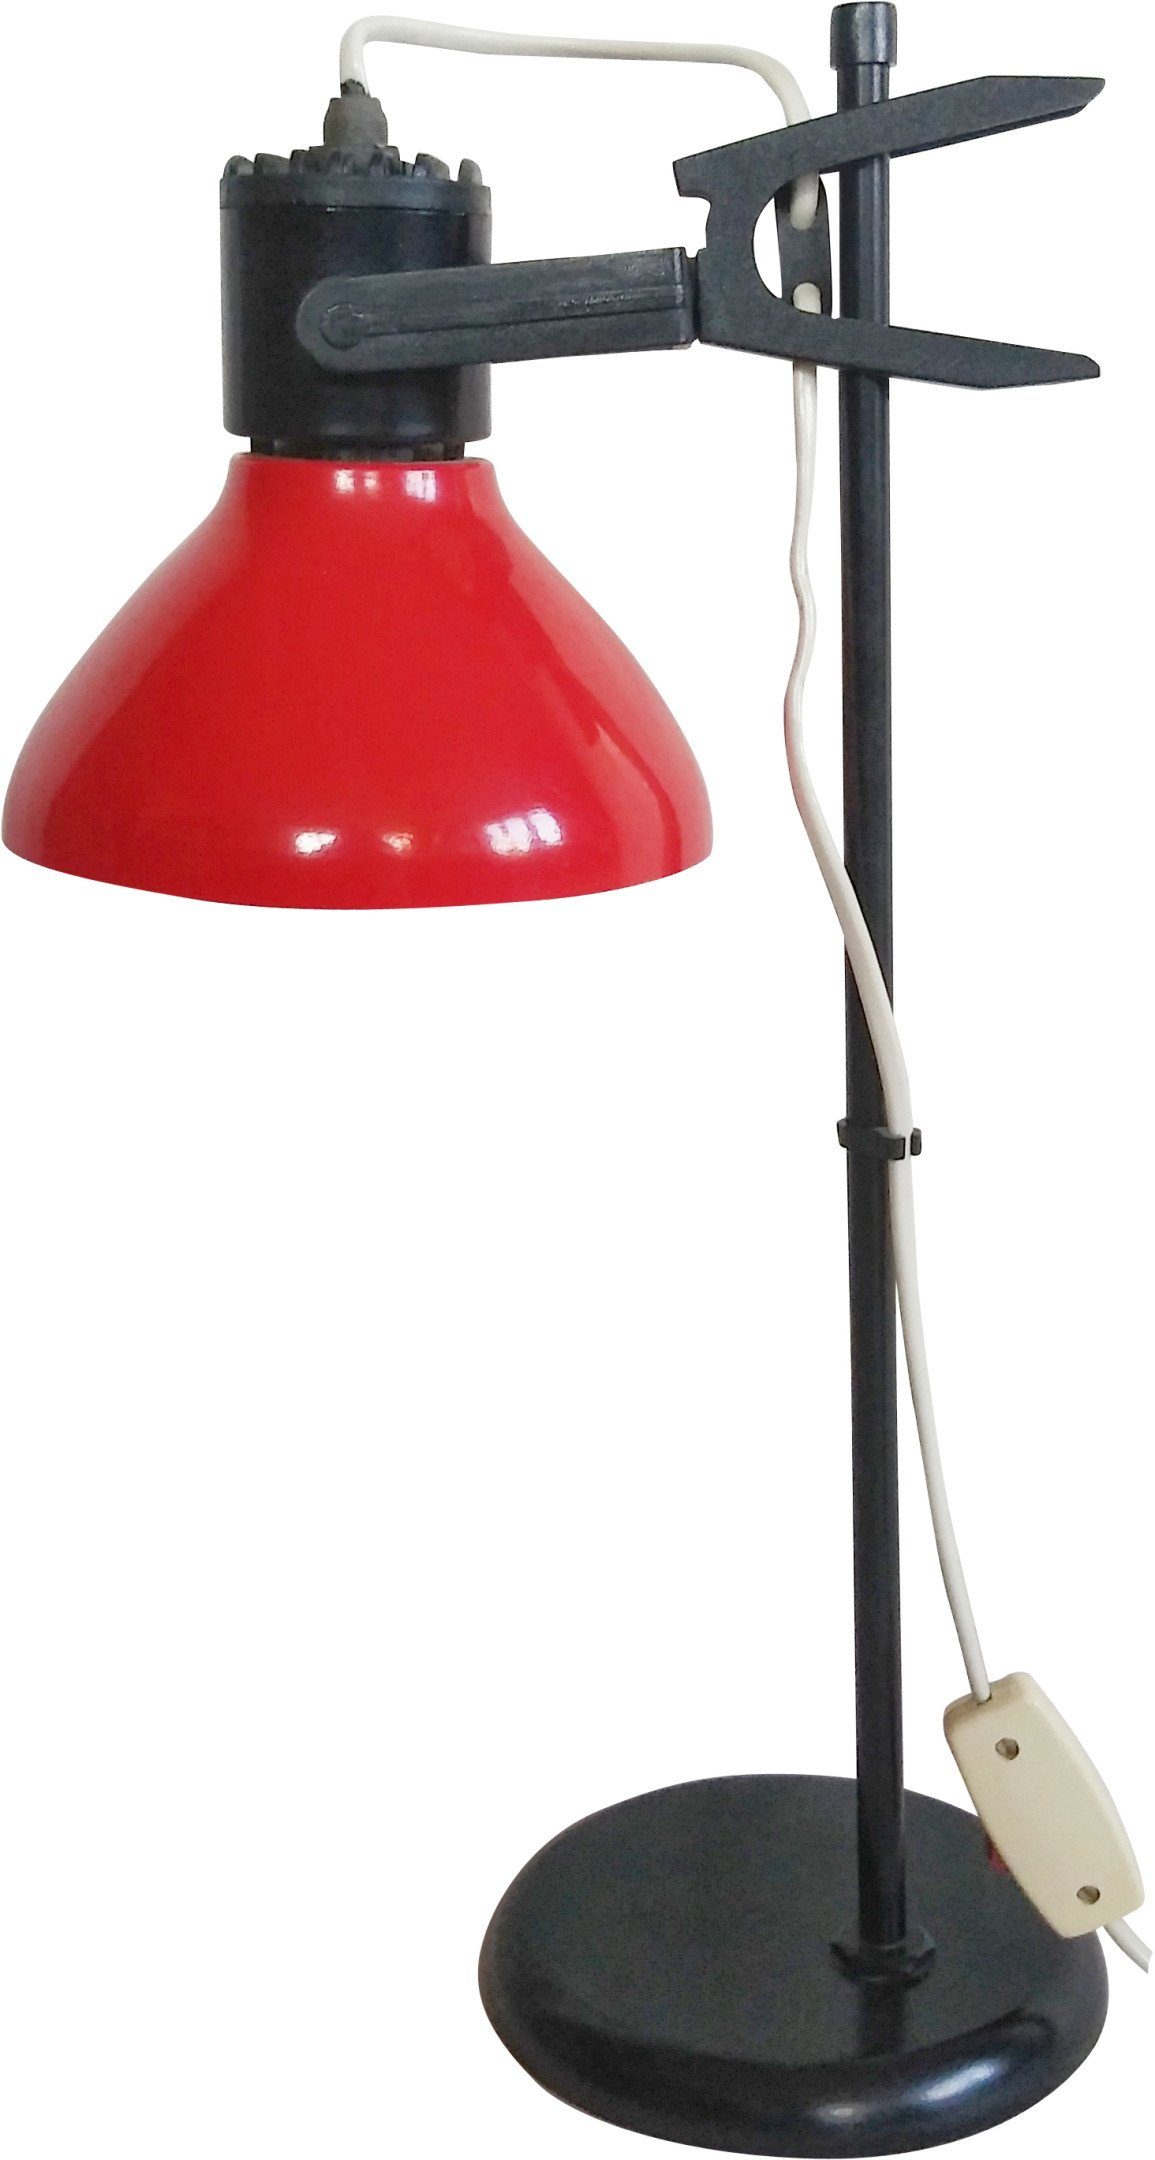 Deska Lamp for Polam, Poland, 1970s